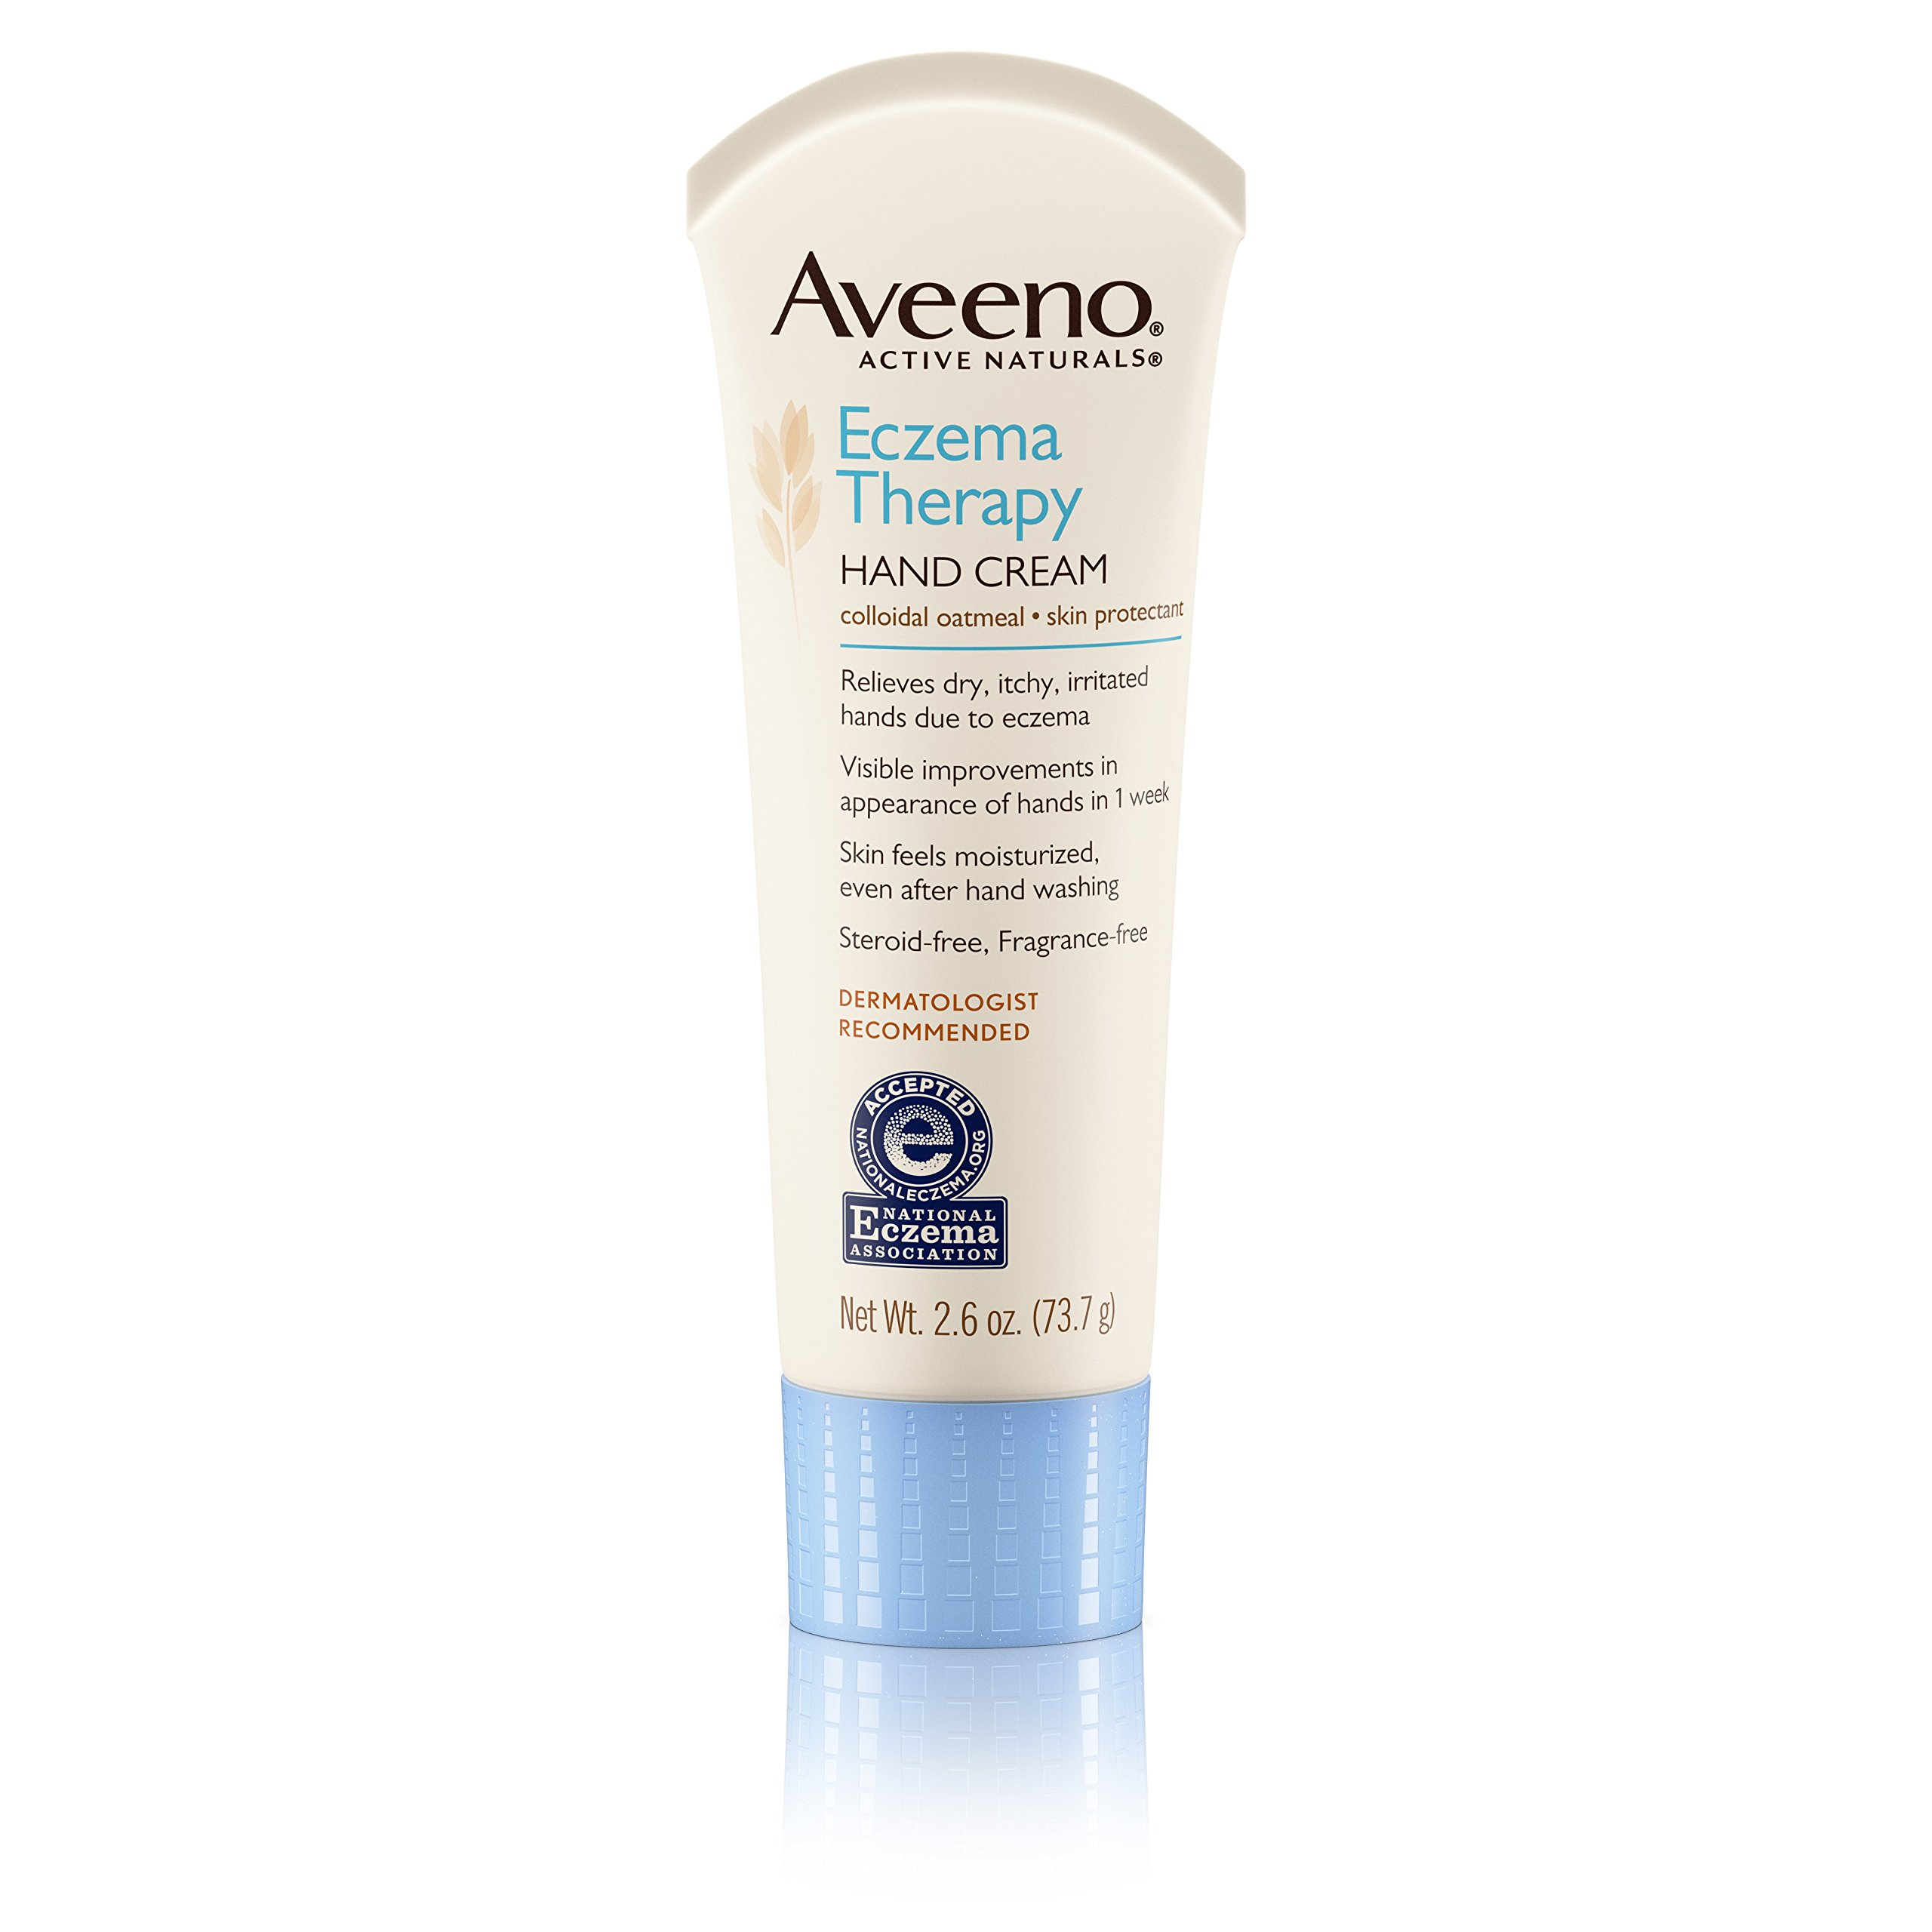 Aveeno Eczema Therapy Hand Cream, 2.6 Oz (Pack of 3) by Aveeno